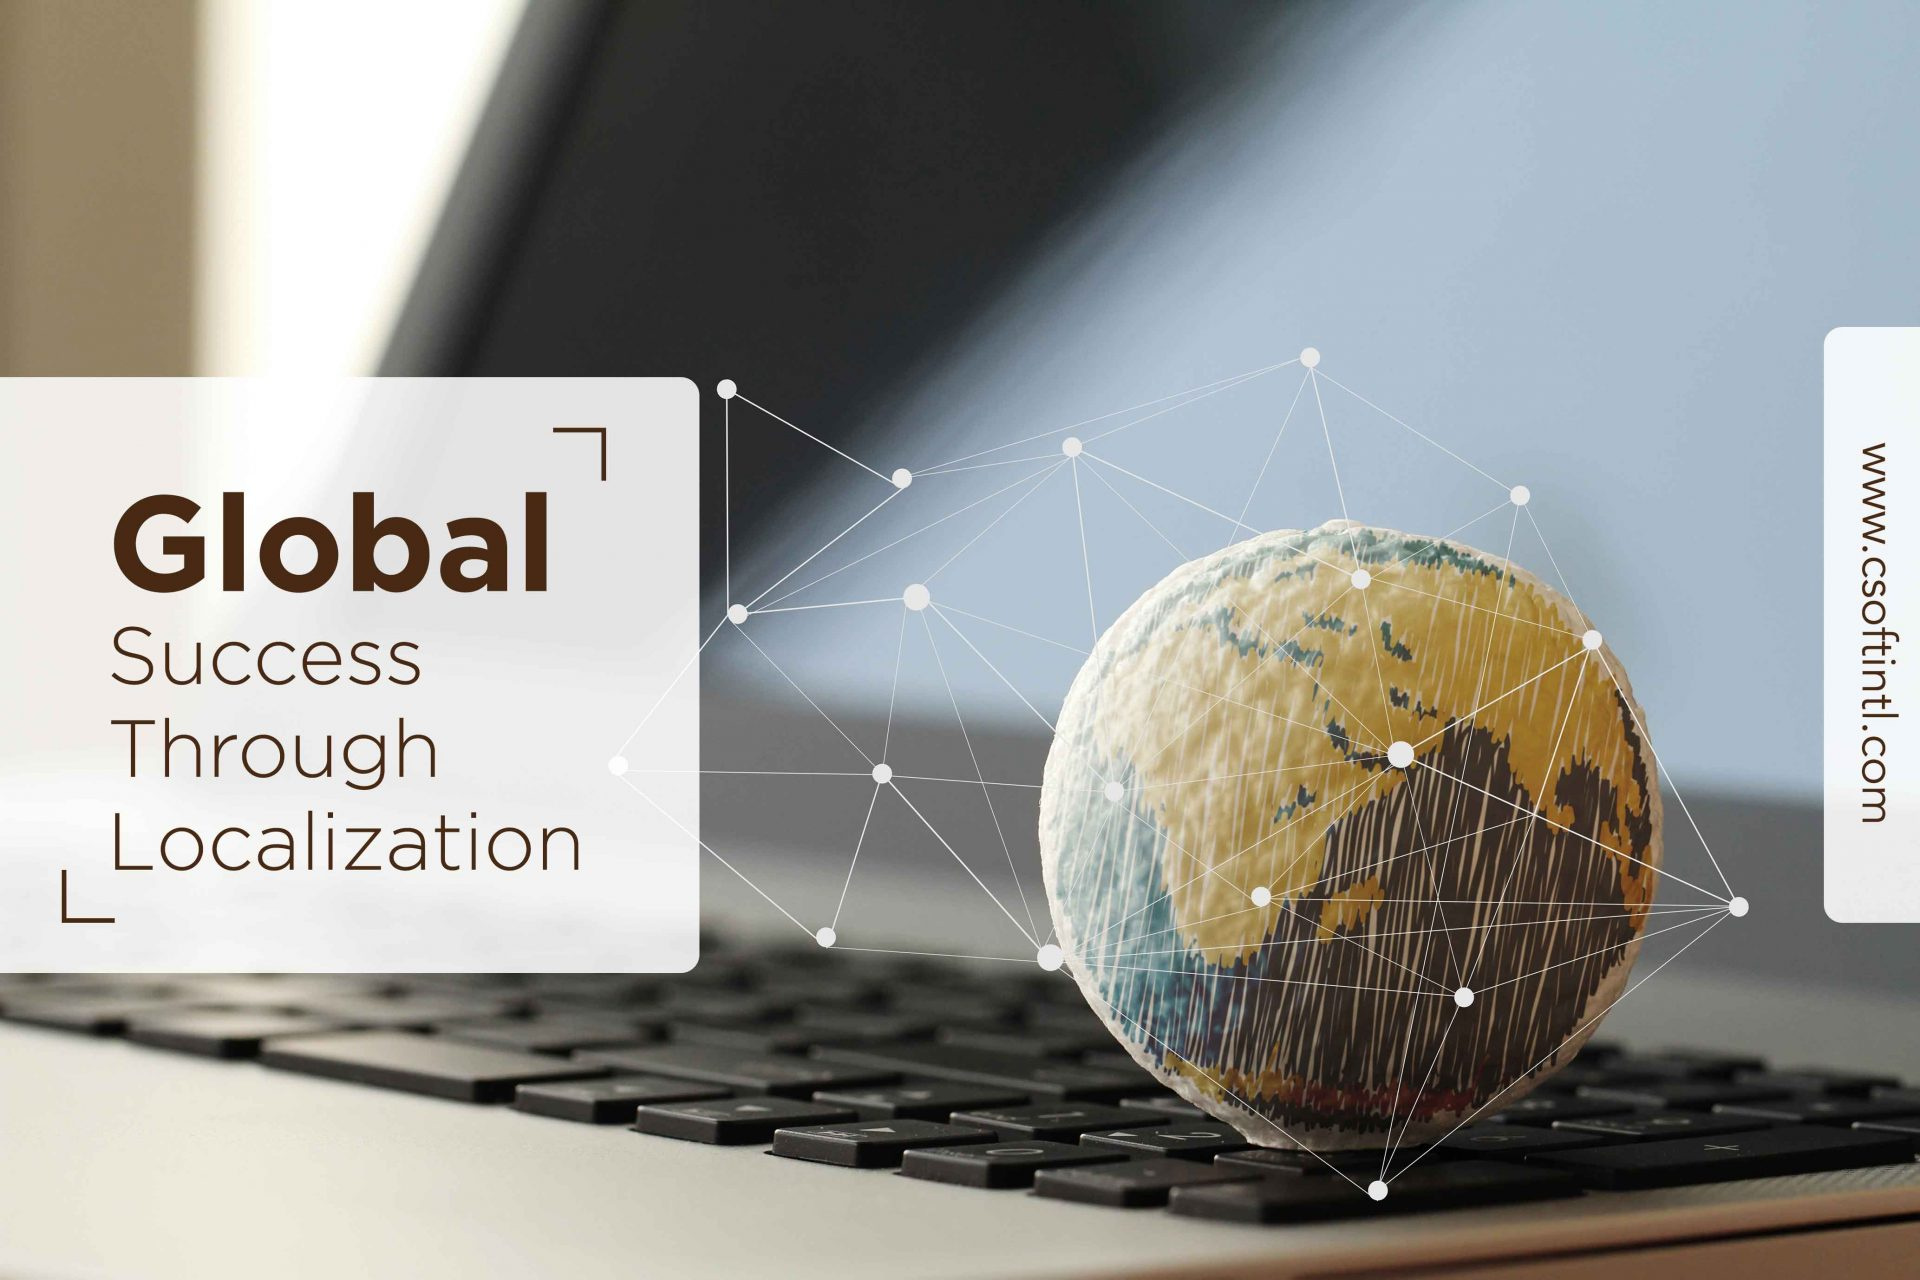 Global Success Through Localization Image